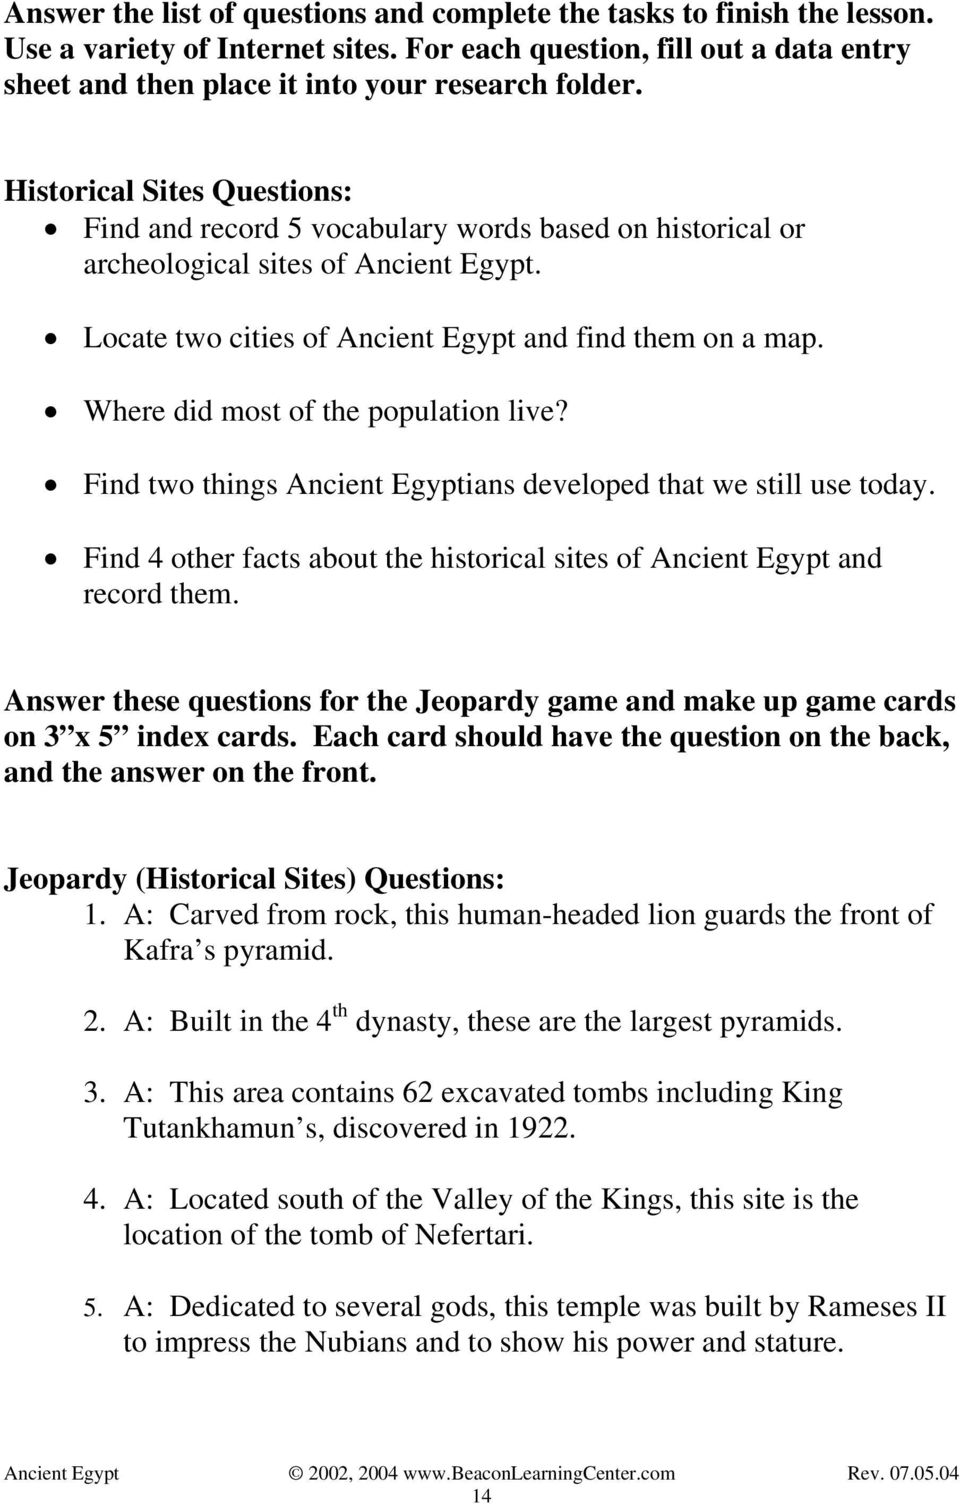 Where did most of the population live? Find two things Ancient Egyptians developed that we still use today. Find 4 other facts about the historical sites of Ancient Egypt and record them.